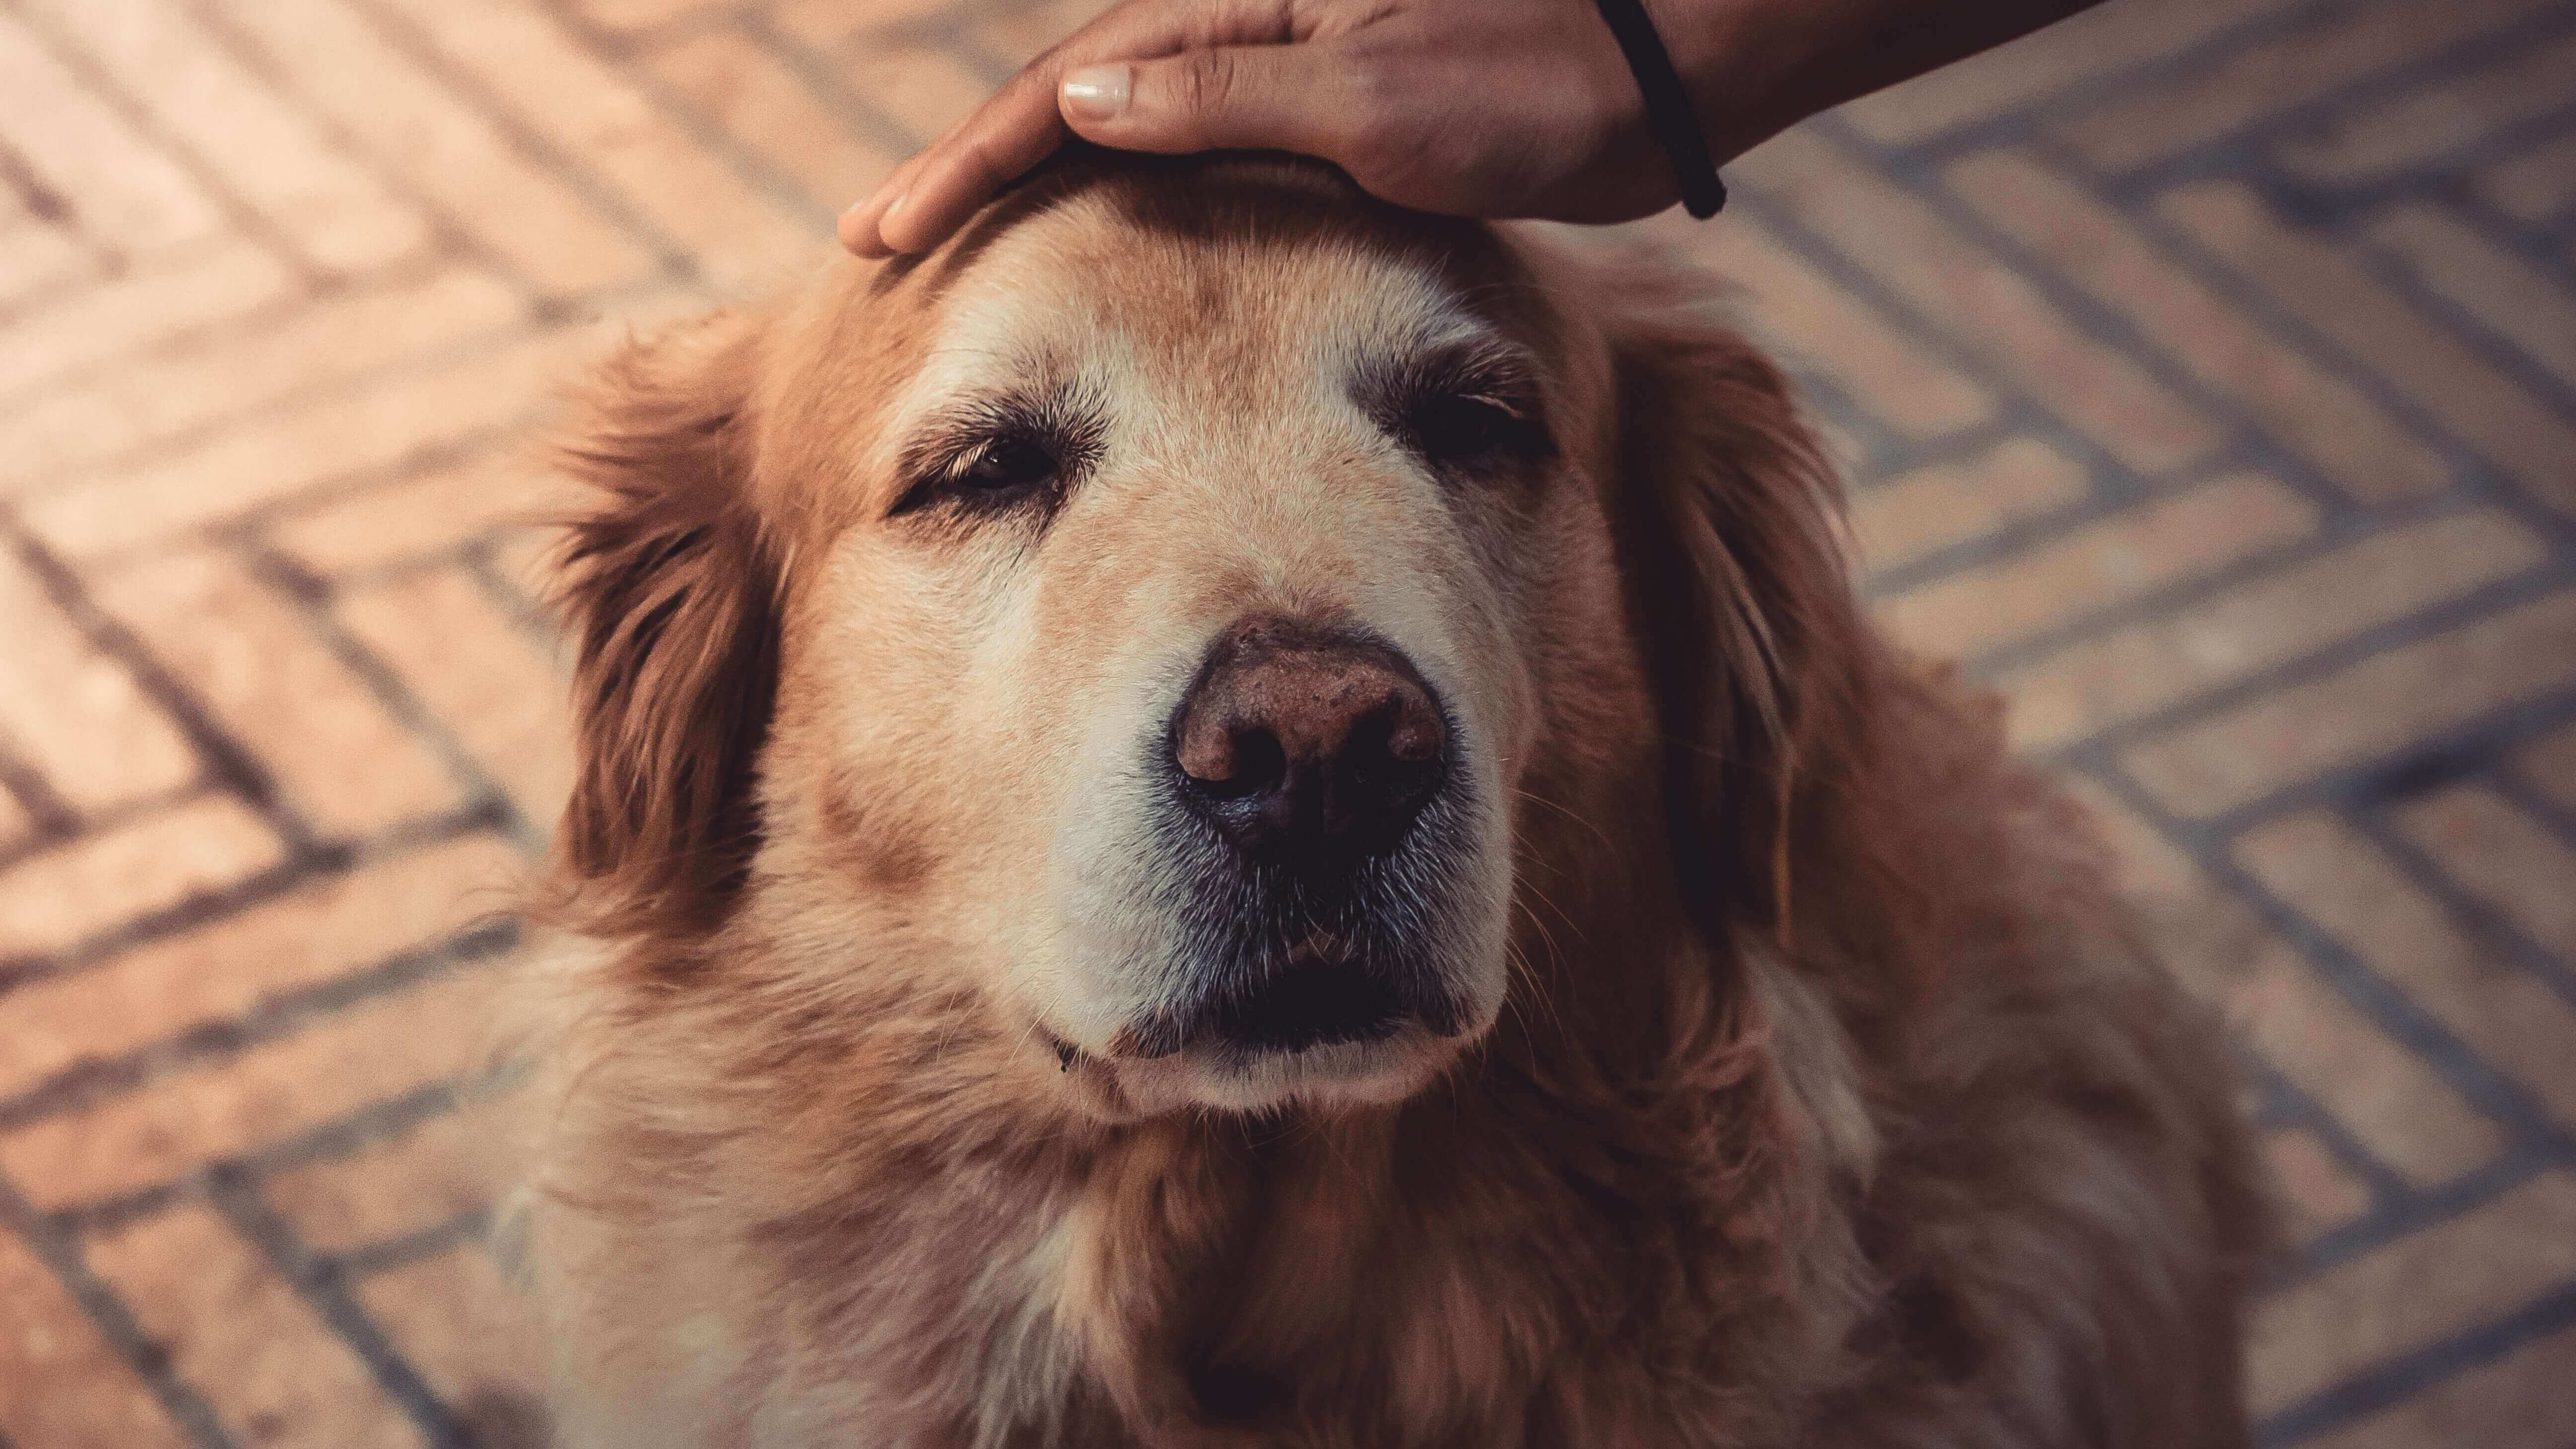 9,000 Golden Retrievers Have Been Saved From China's Dog Meat Trade